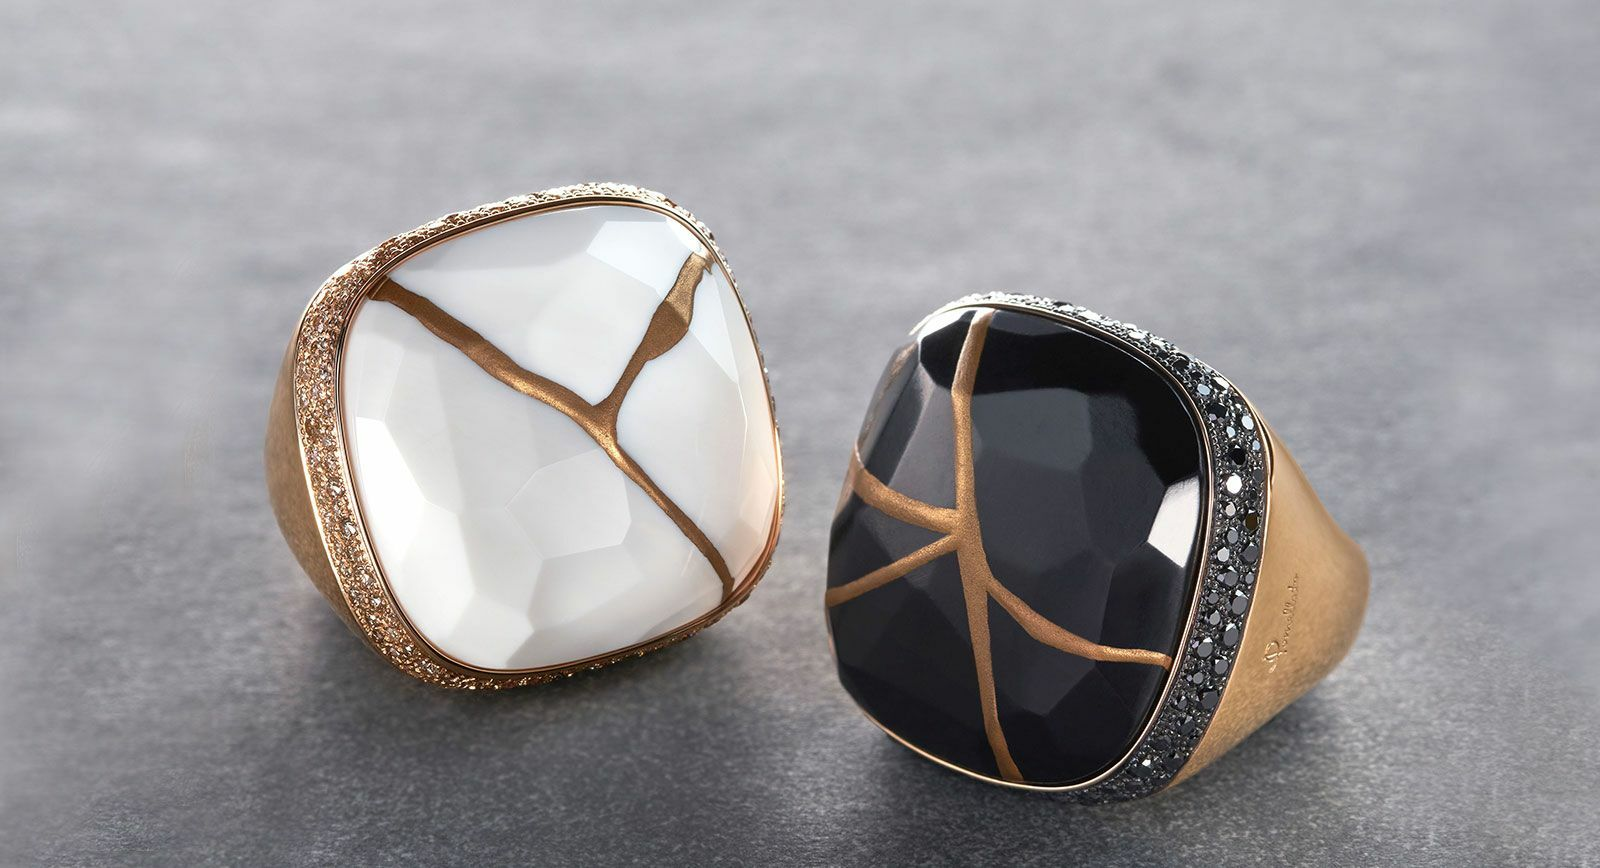 Pomellato Kintsugi collection cocktail rings with jet and kogolong (cacholong) in gold